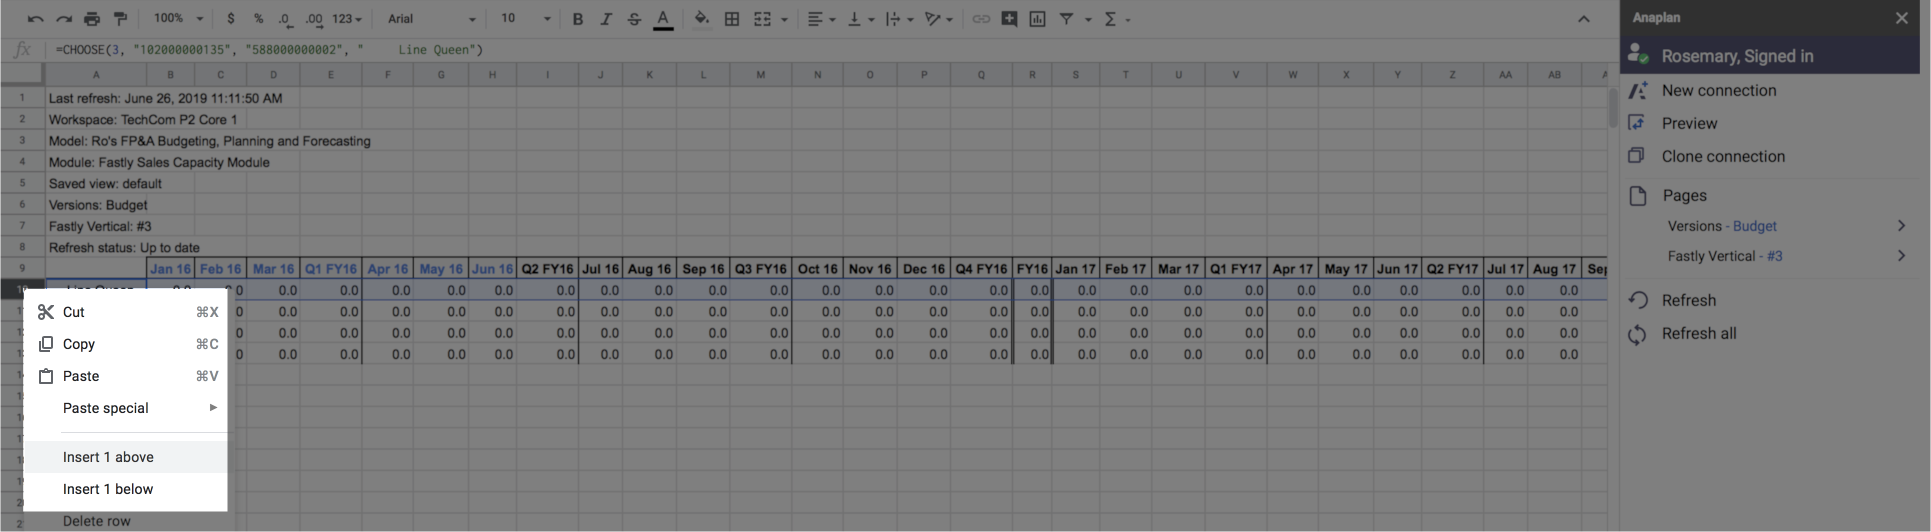 A worksheet with a context menu displayed. Insert 1 above is highlighted.